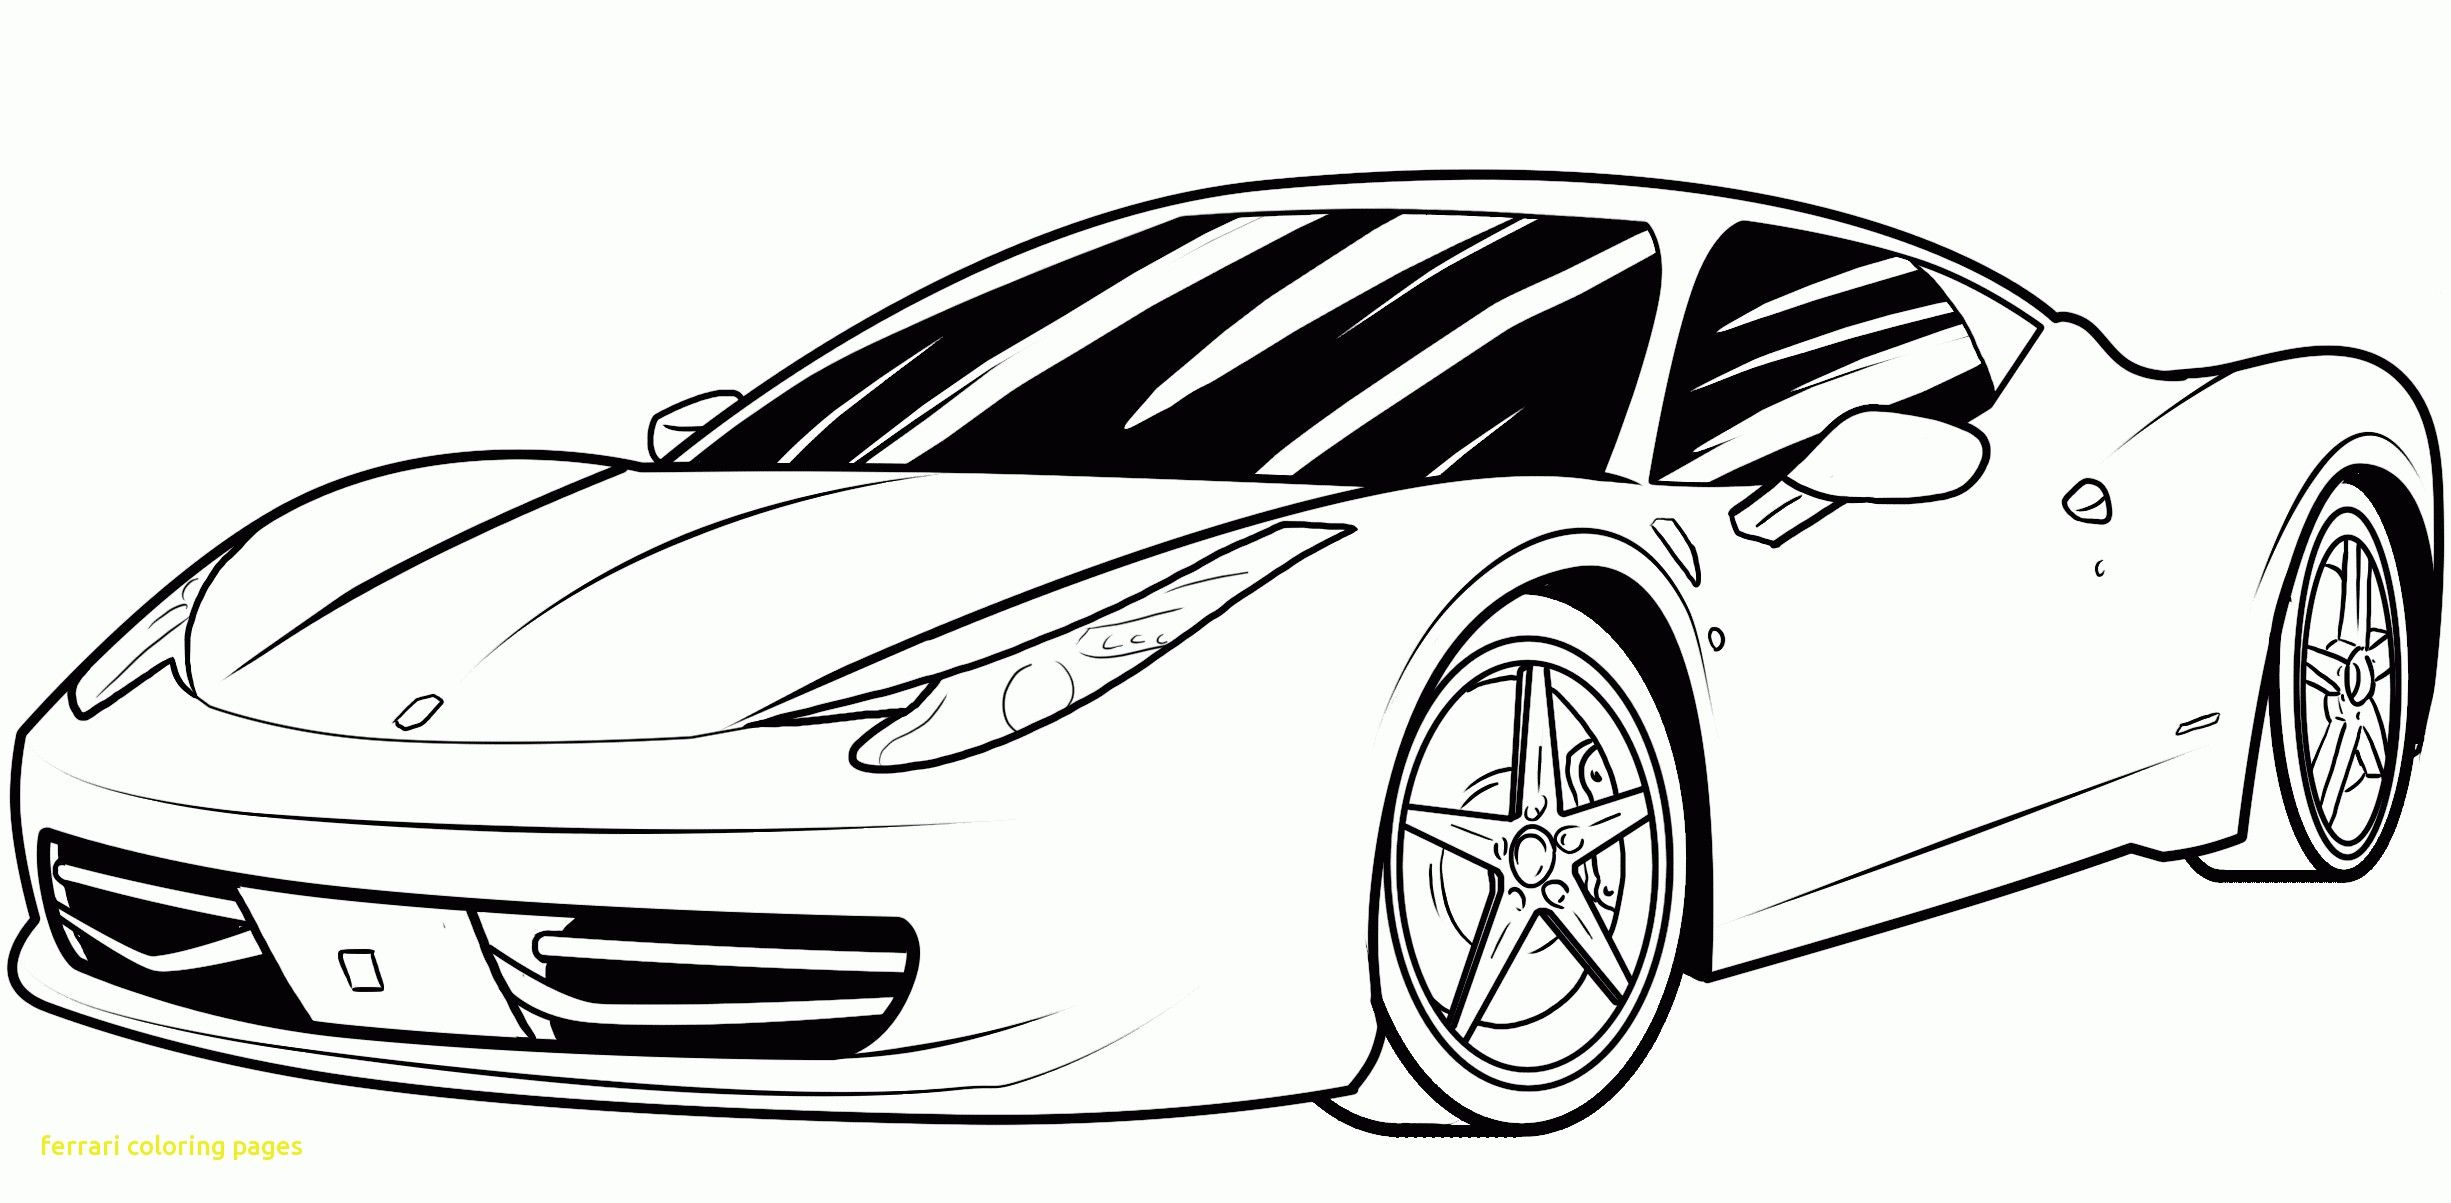 Ferrari Colouring Pages To Print Cars Coloring Pages Race Car